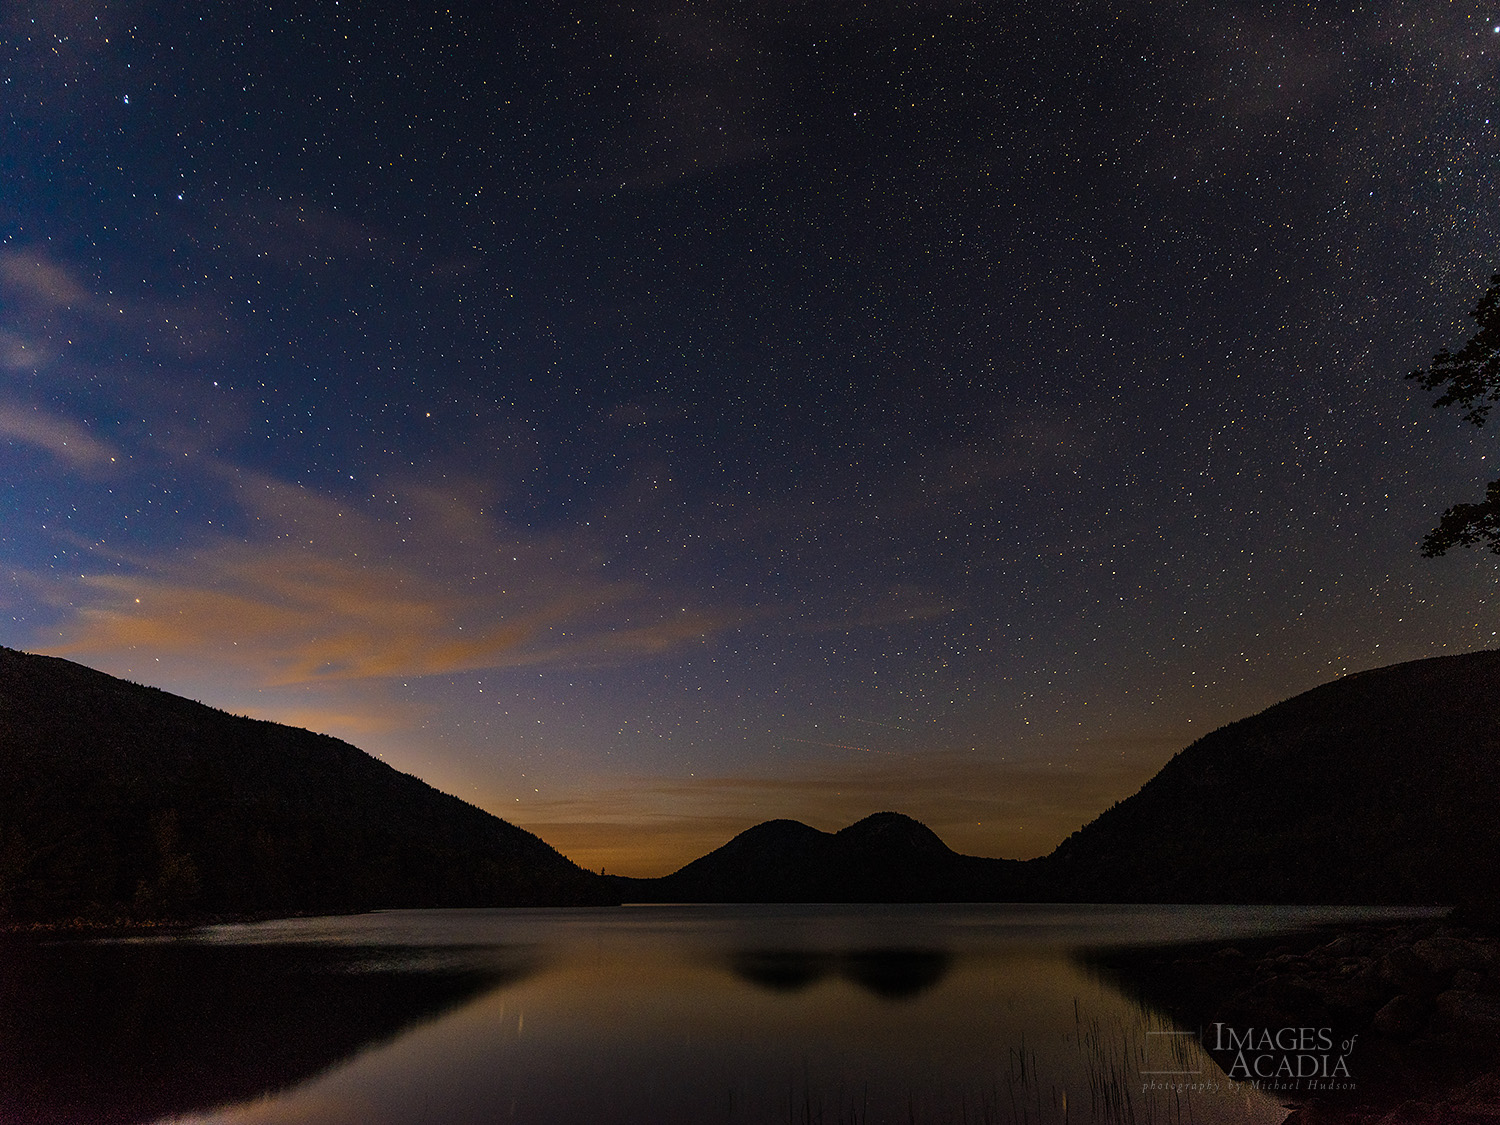 The Night Sky over Jordan Pond, with the Bubble Mountains